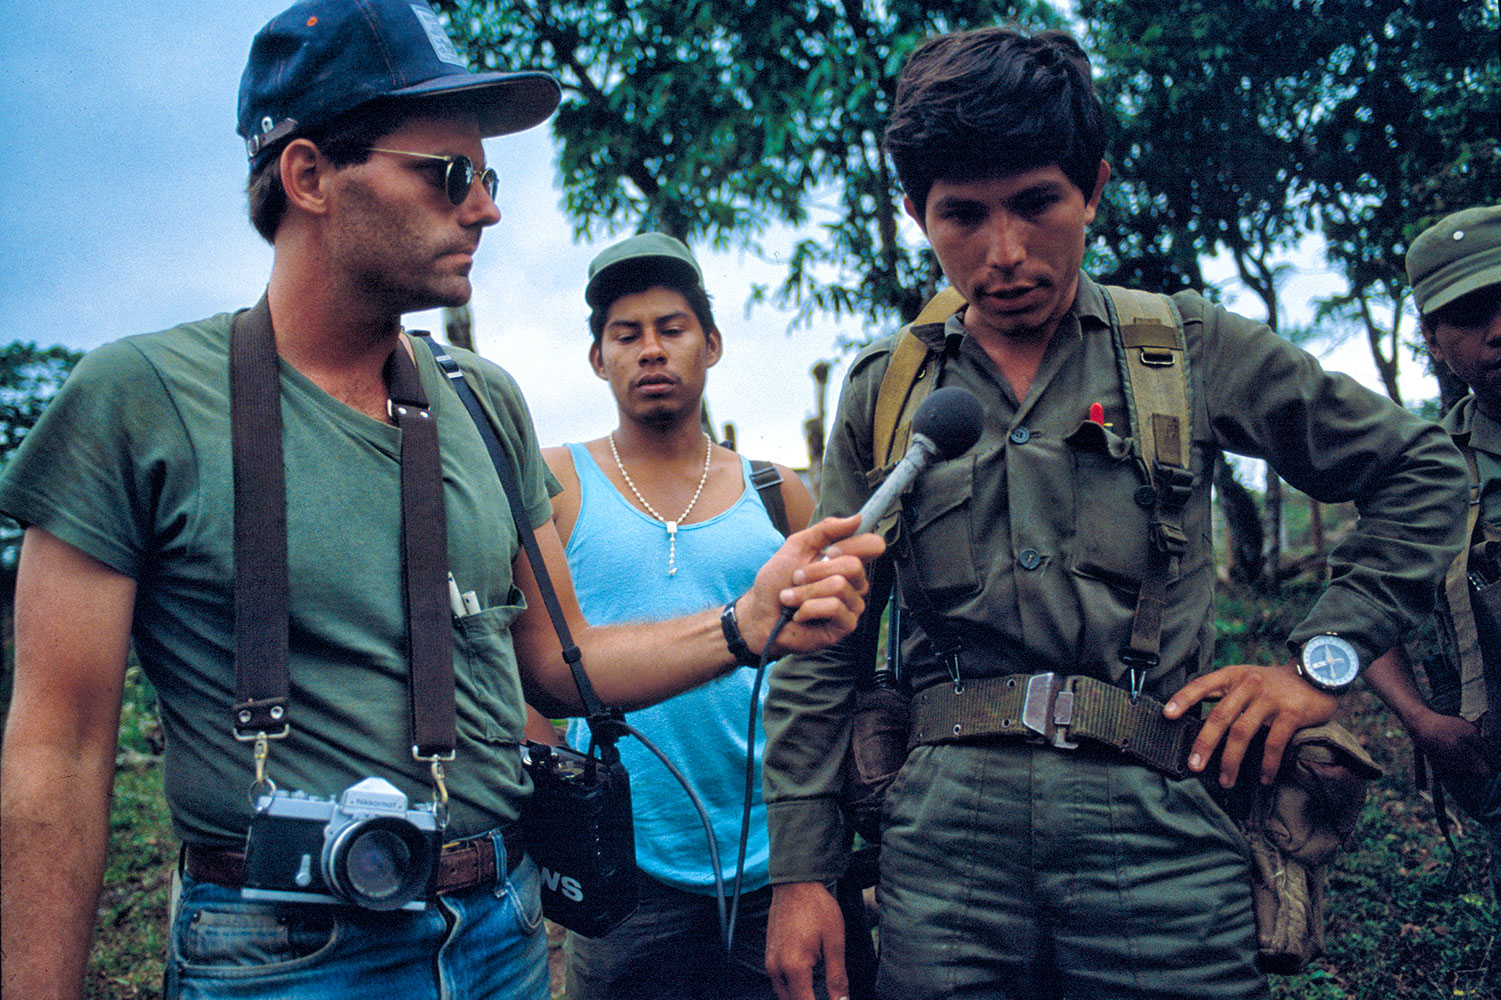 Scott Wallace interviewing an officer from the Sandinista Popular Army in Nueva Segovia, Nicaragua, 1984.